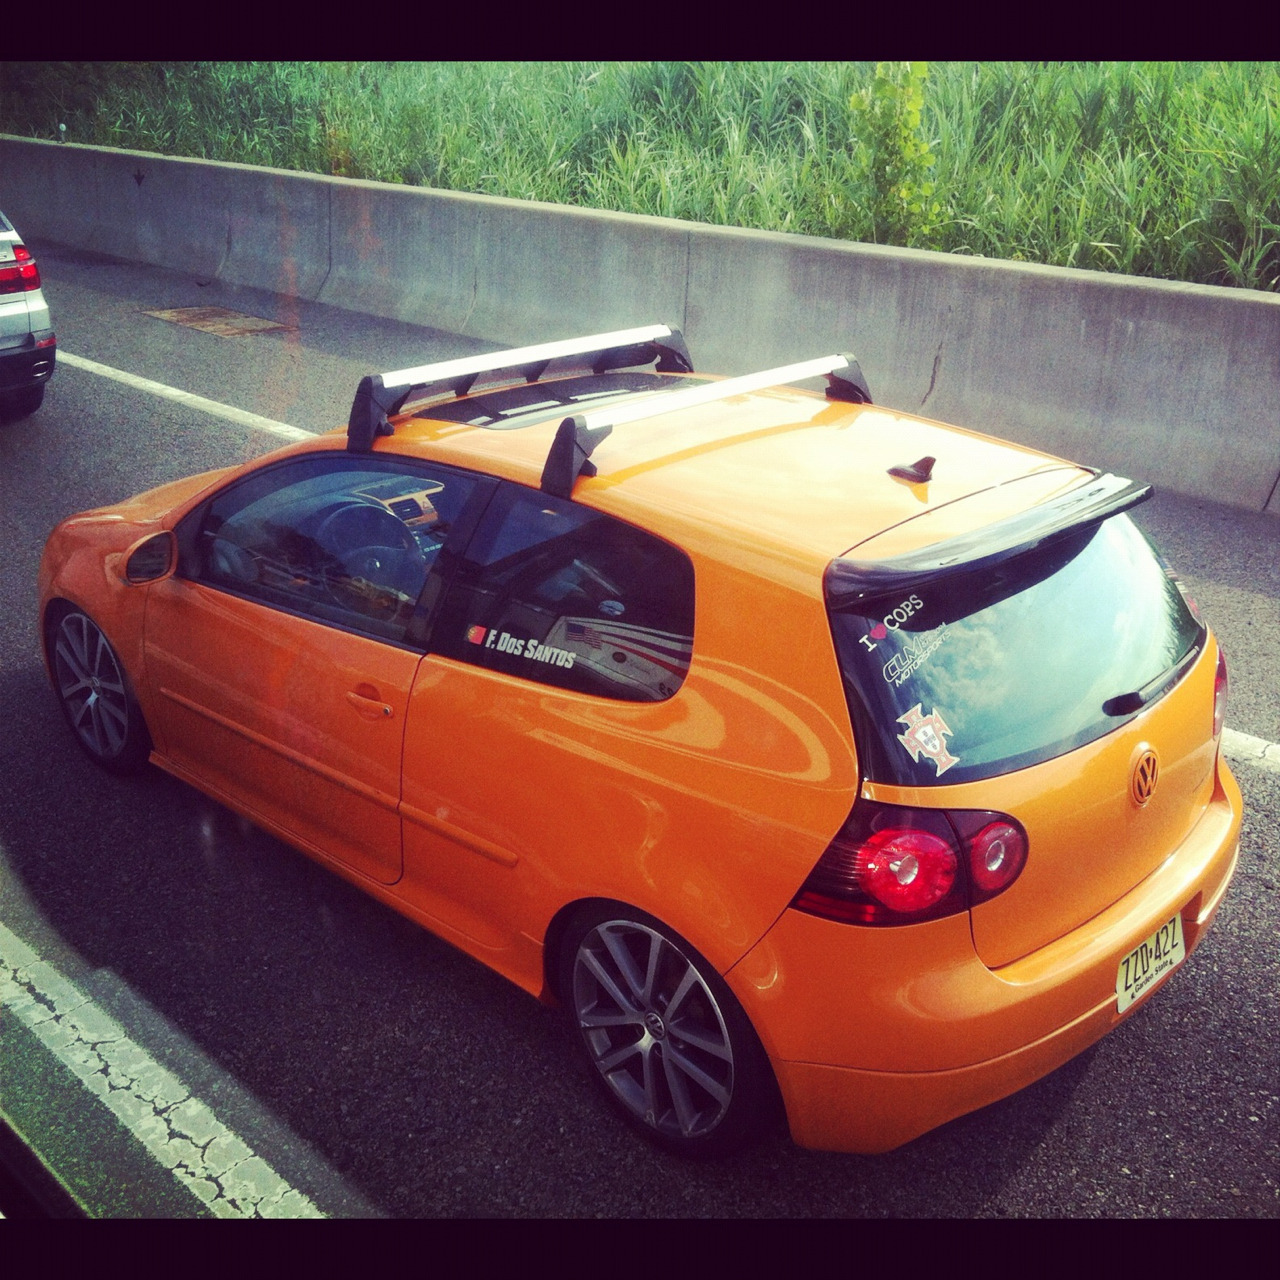 Here's one I took on the bus of a GTI Fahrenheit wannabe. You can tell that it's not real by the interior for one.   VW only made 1200 of these for the US. I almost bought one after my Mini but it only came with VW's DSG tranny, one of the best auto transmissions, but I love manual trannies too much in a car like this. Pretty happy I never bought it, dealers were up charging way too much too.